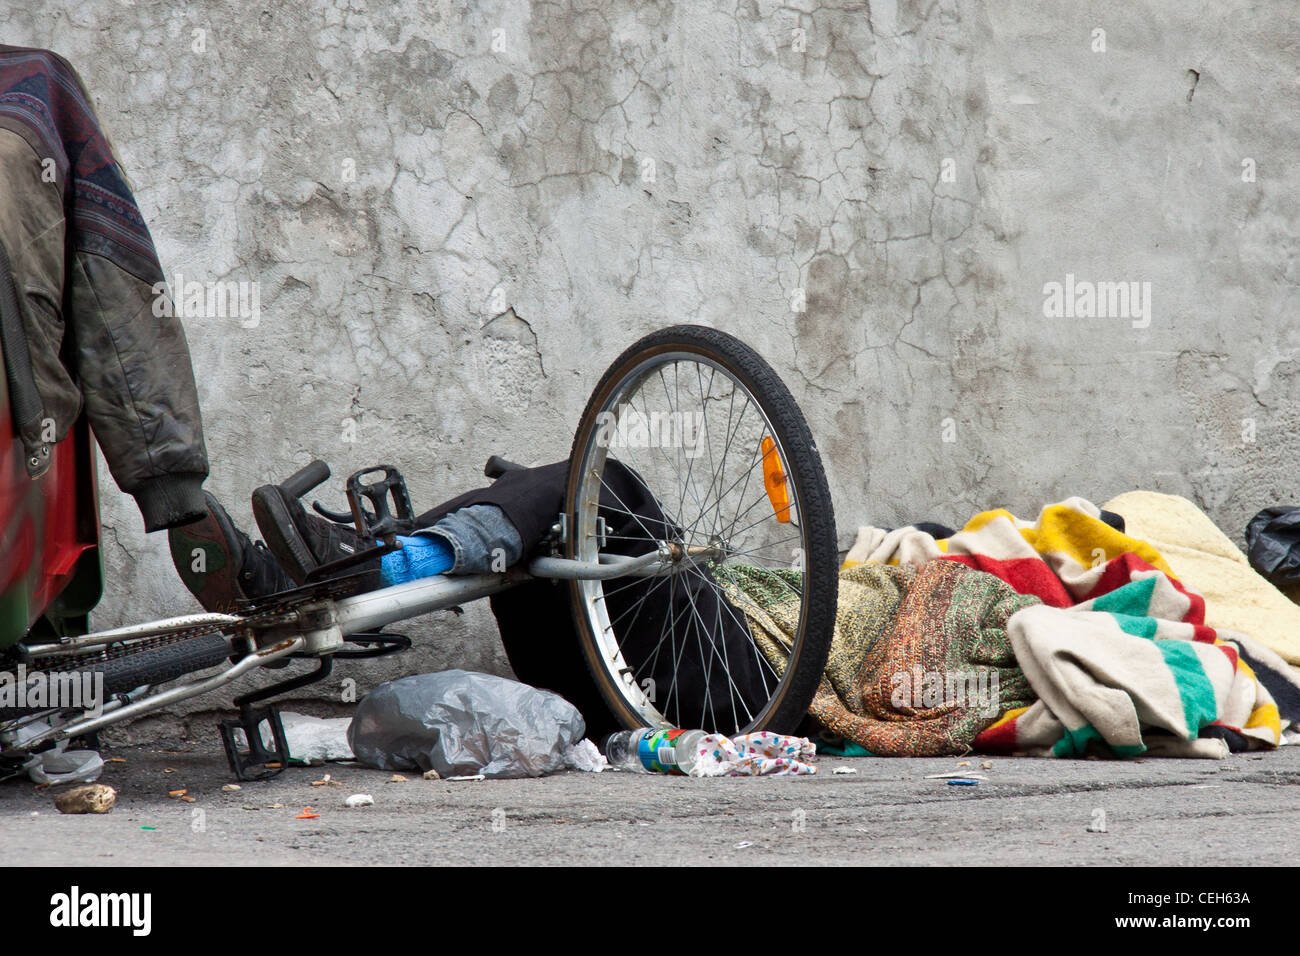 Homeless sleeping on the sidewalk guarding his bicycle with foots in front of a cracked wall surrounded by a lot - Stock Image